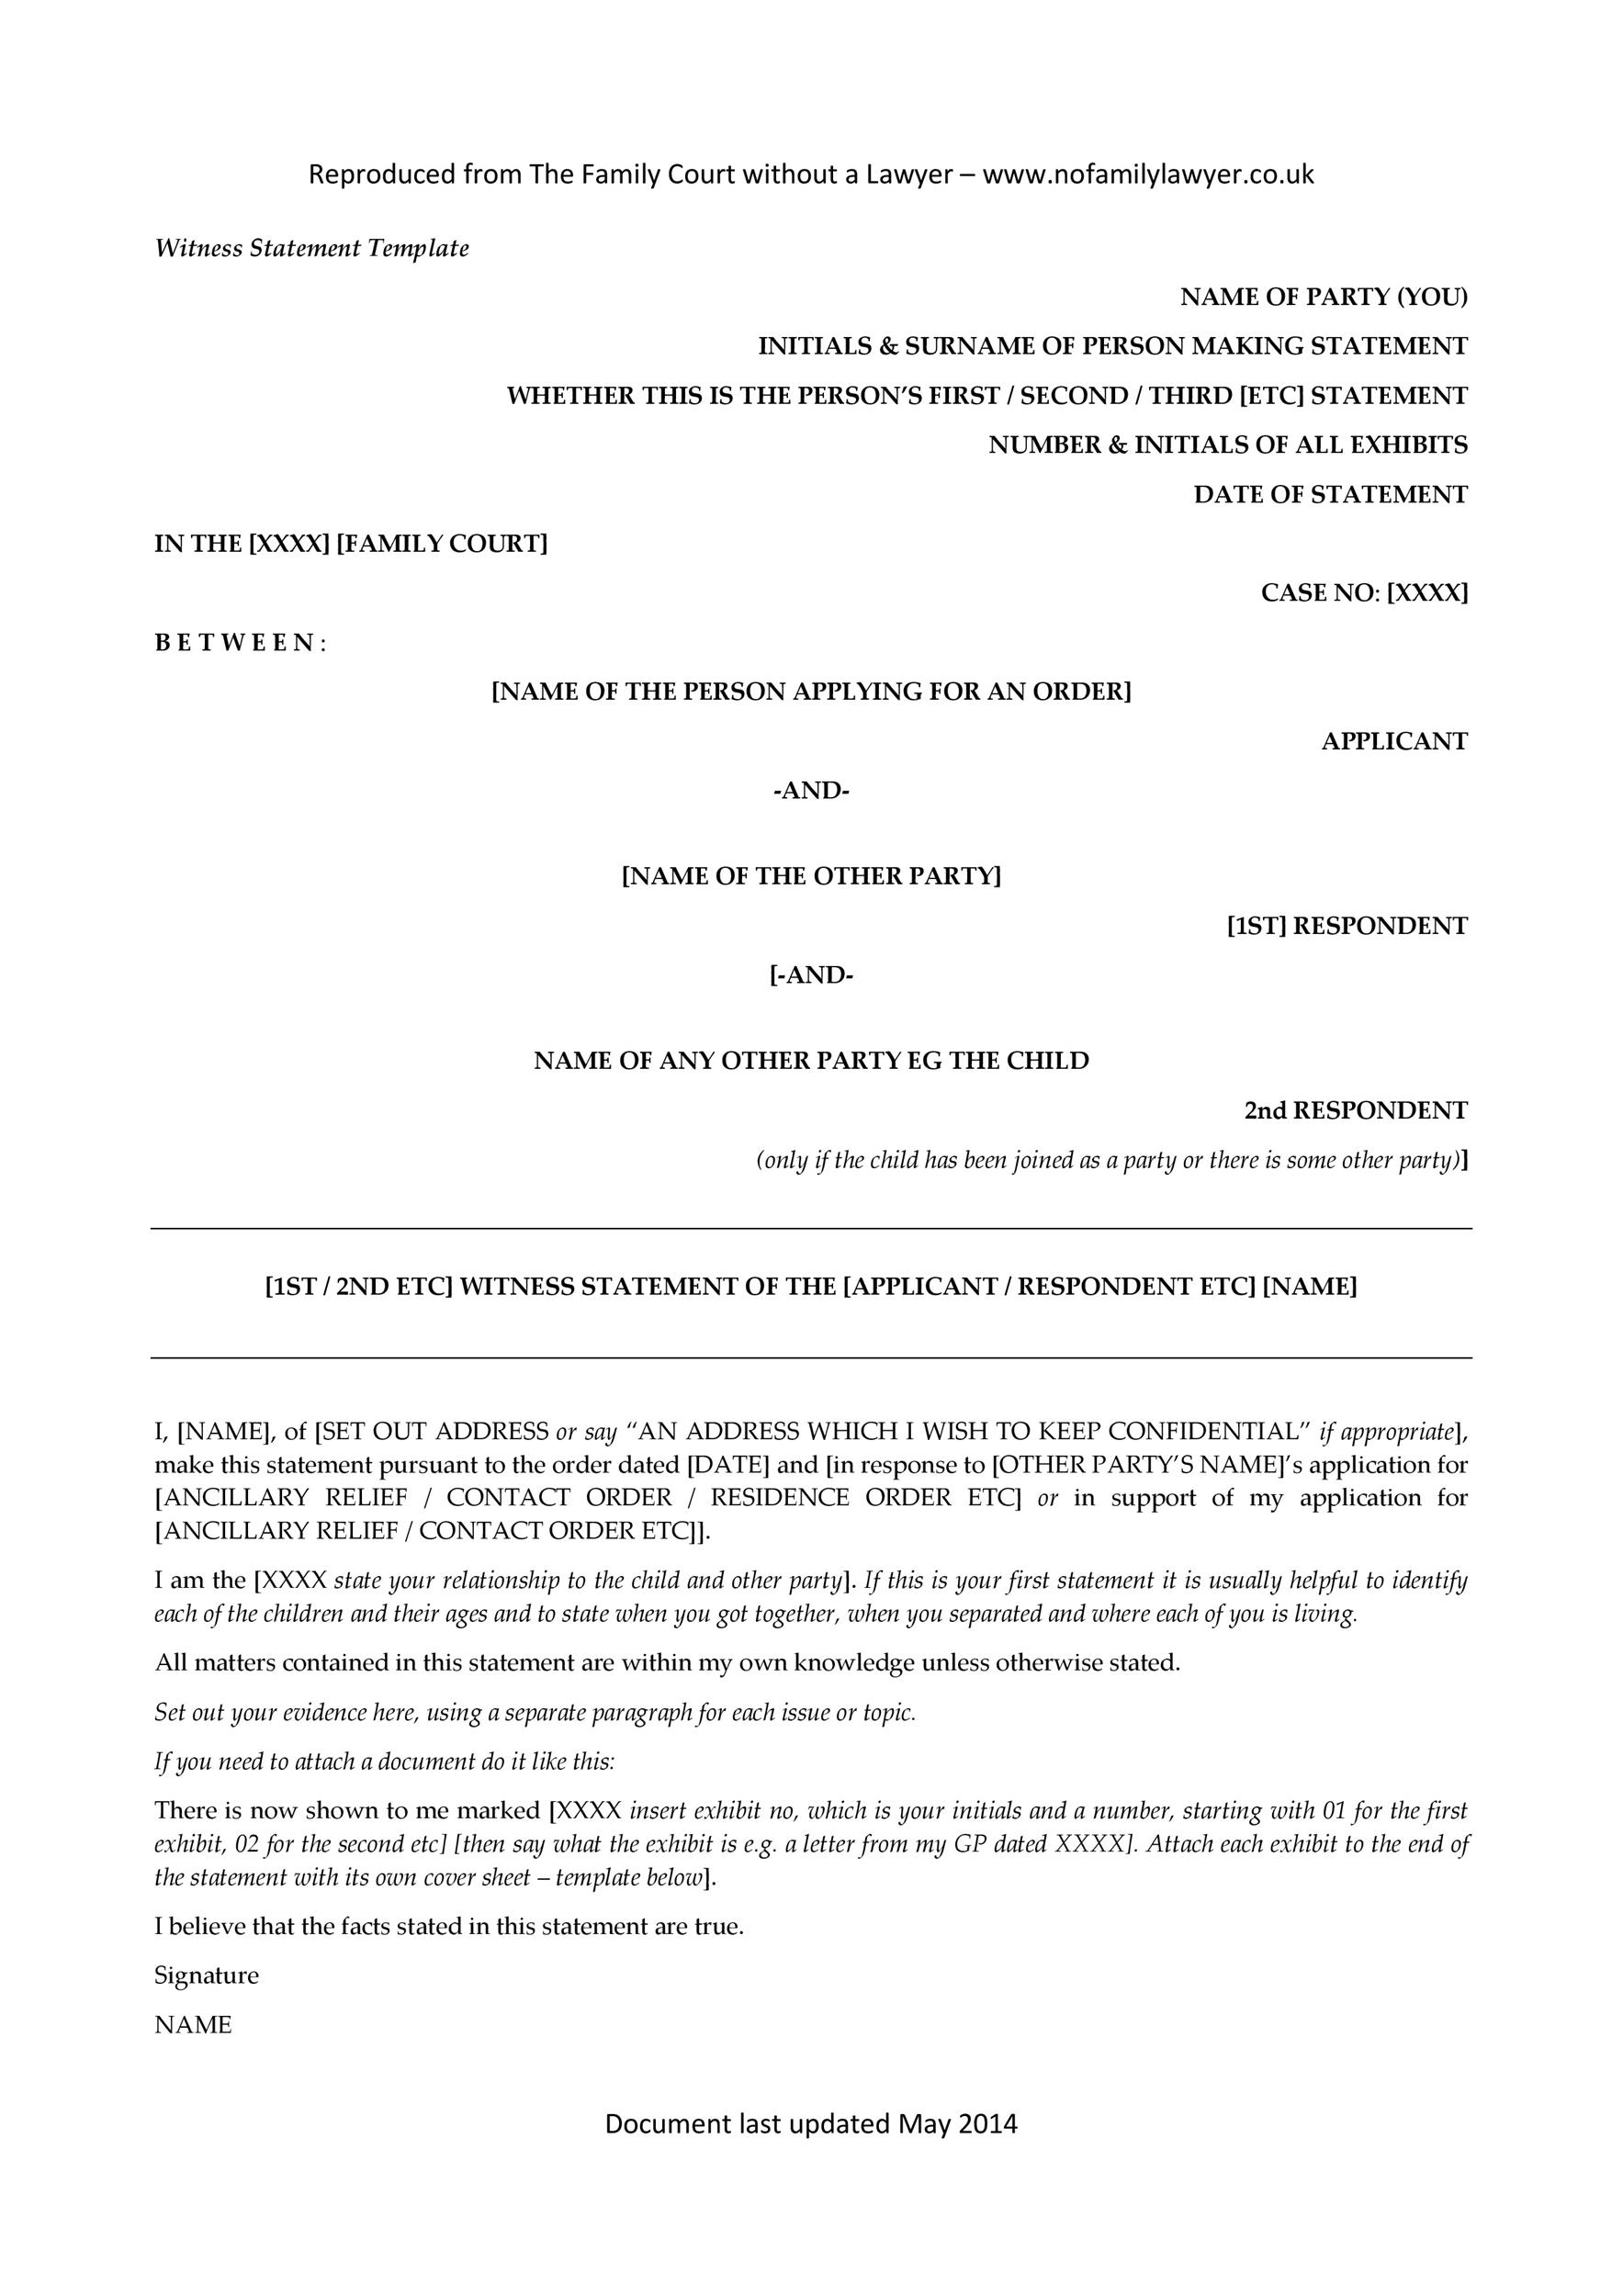 Free witness statement form 11